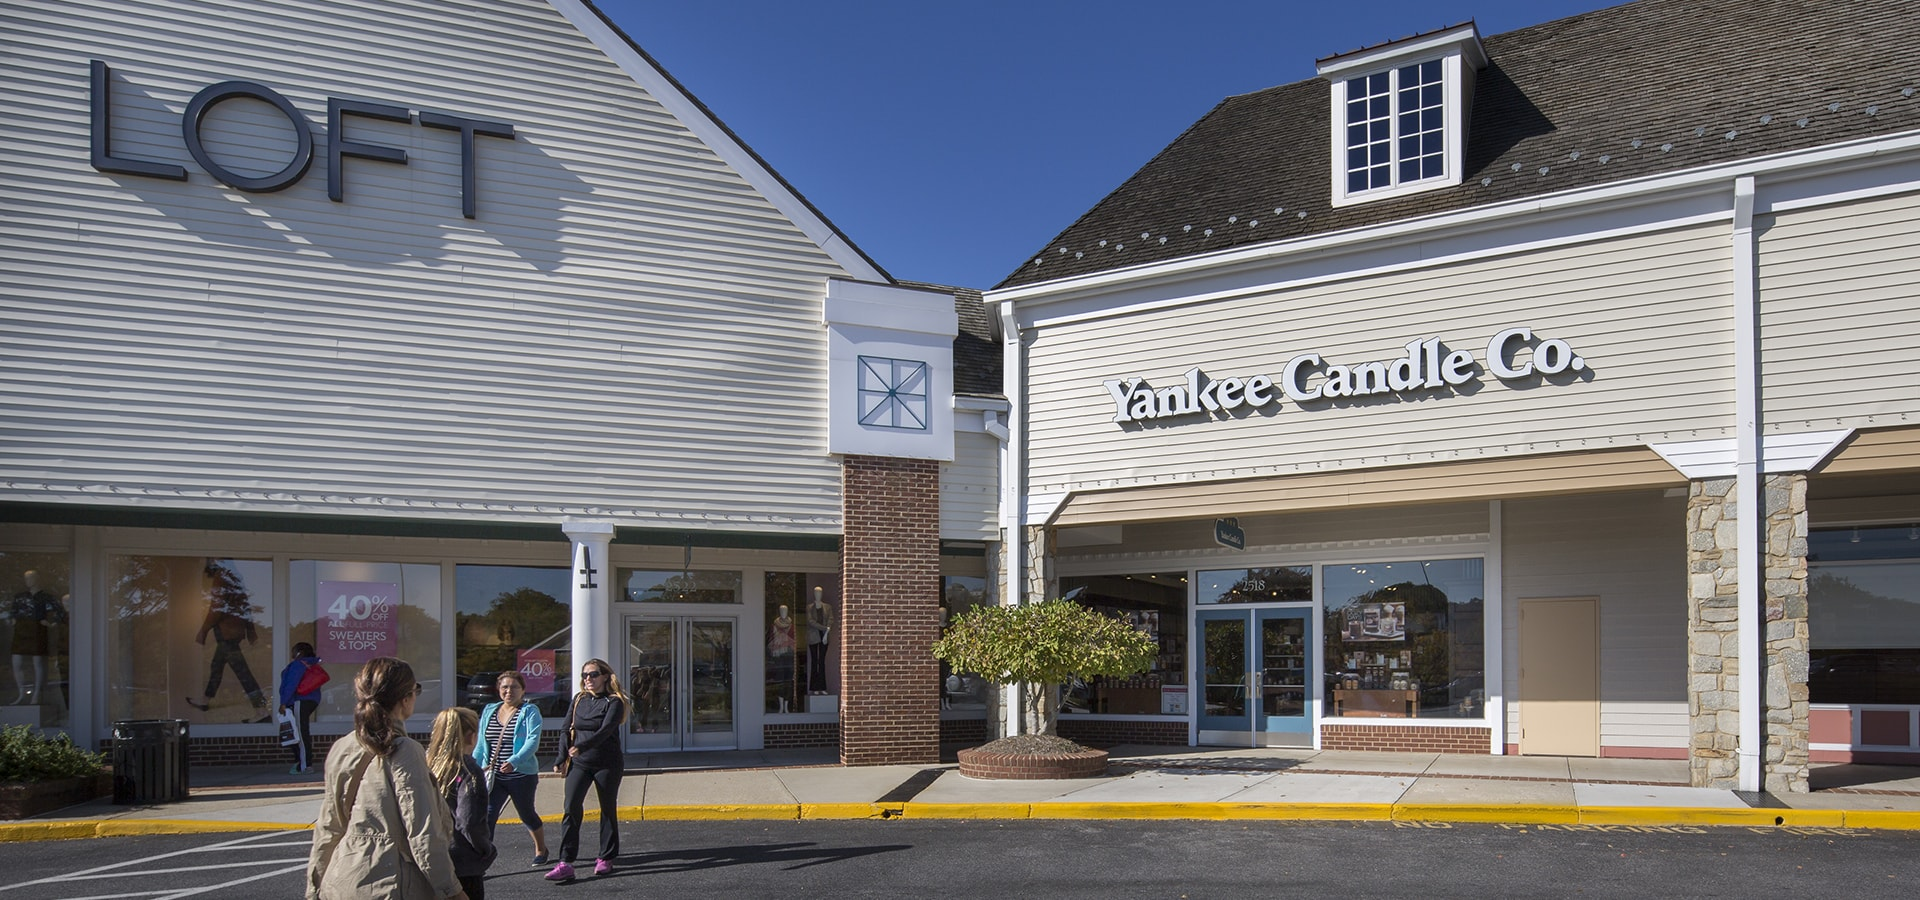 yankee candle company A free inside look at yankee candle salary trends 538 salaries for 99 jobs at yankee candle salaries posted anonymously by yankee candle employees.